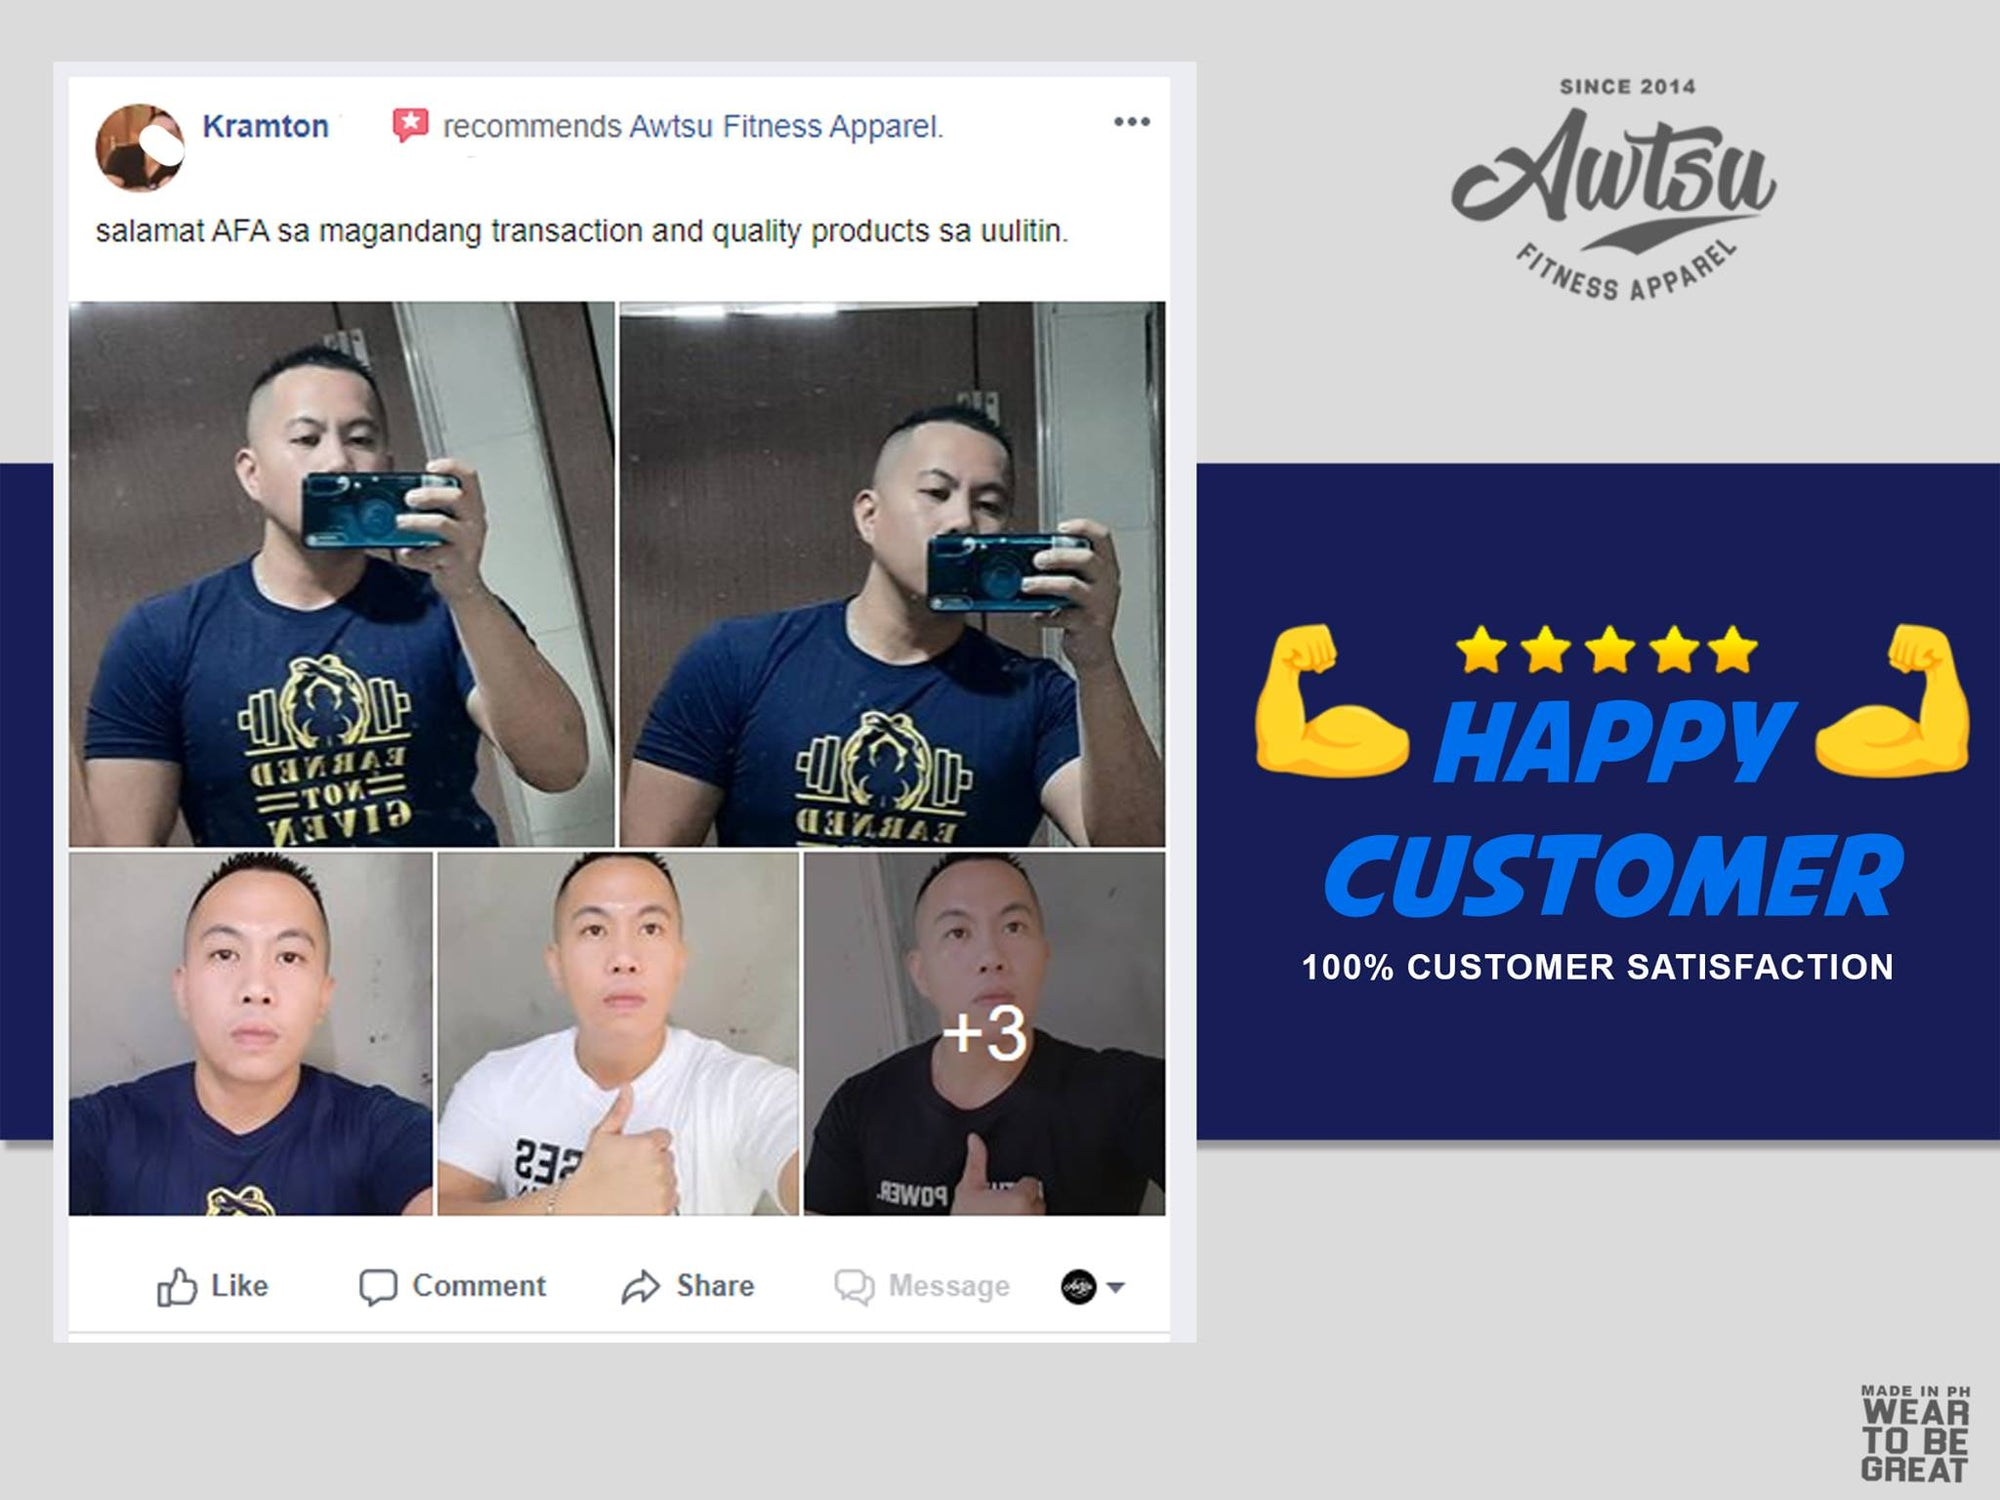 Krampton 5 Star Review of Awtsu Fitness Apparel